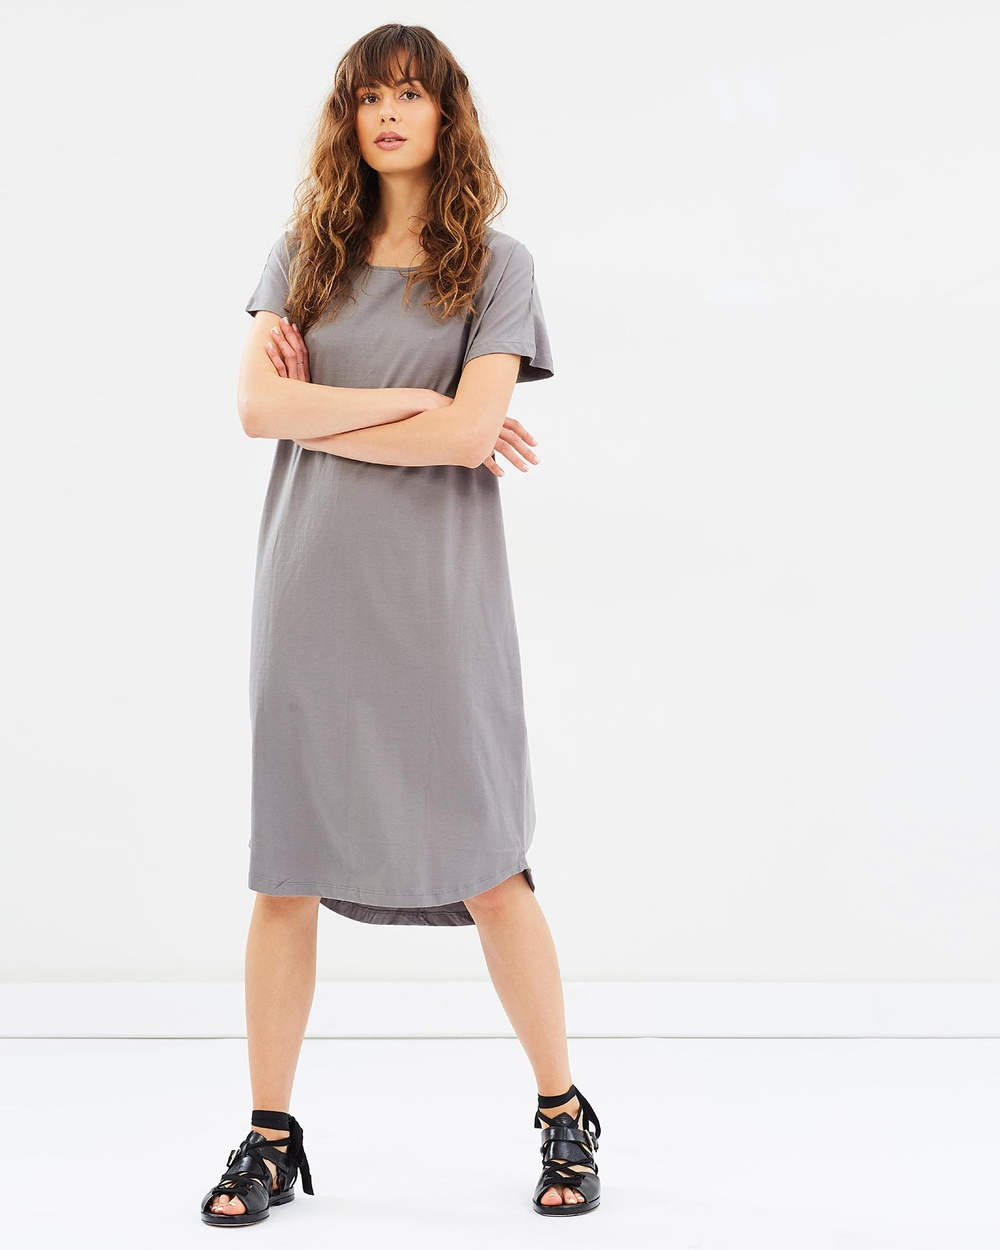 Cloth & Co. Organic Cotton Long T Shirt Dress Dresses Charcoal Organic Cotton Long T-Shirt Dress